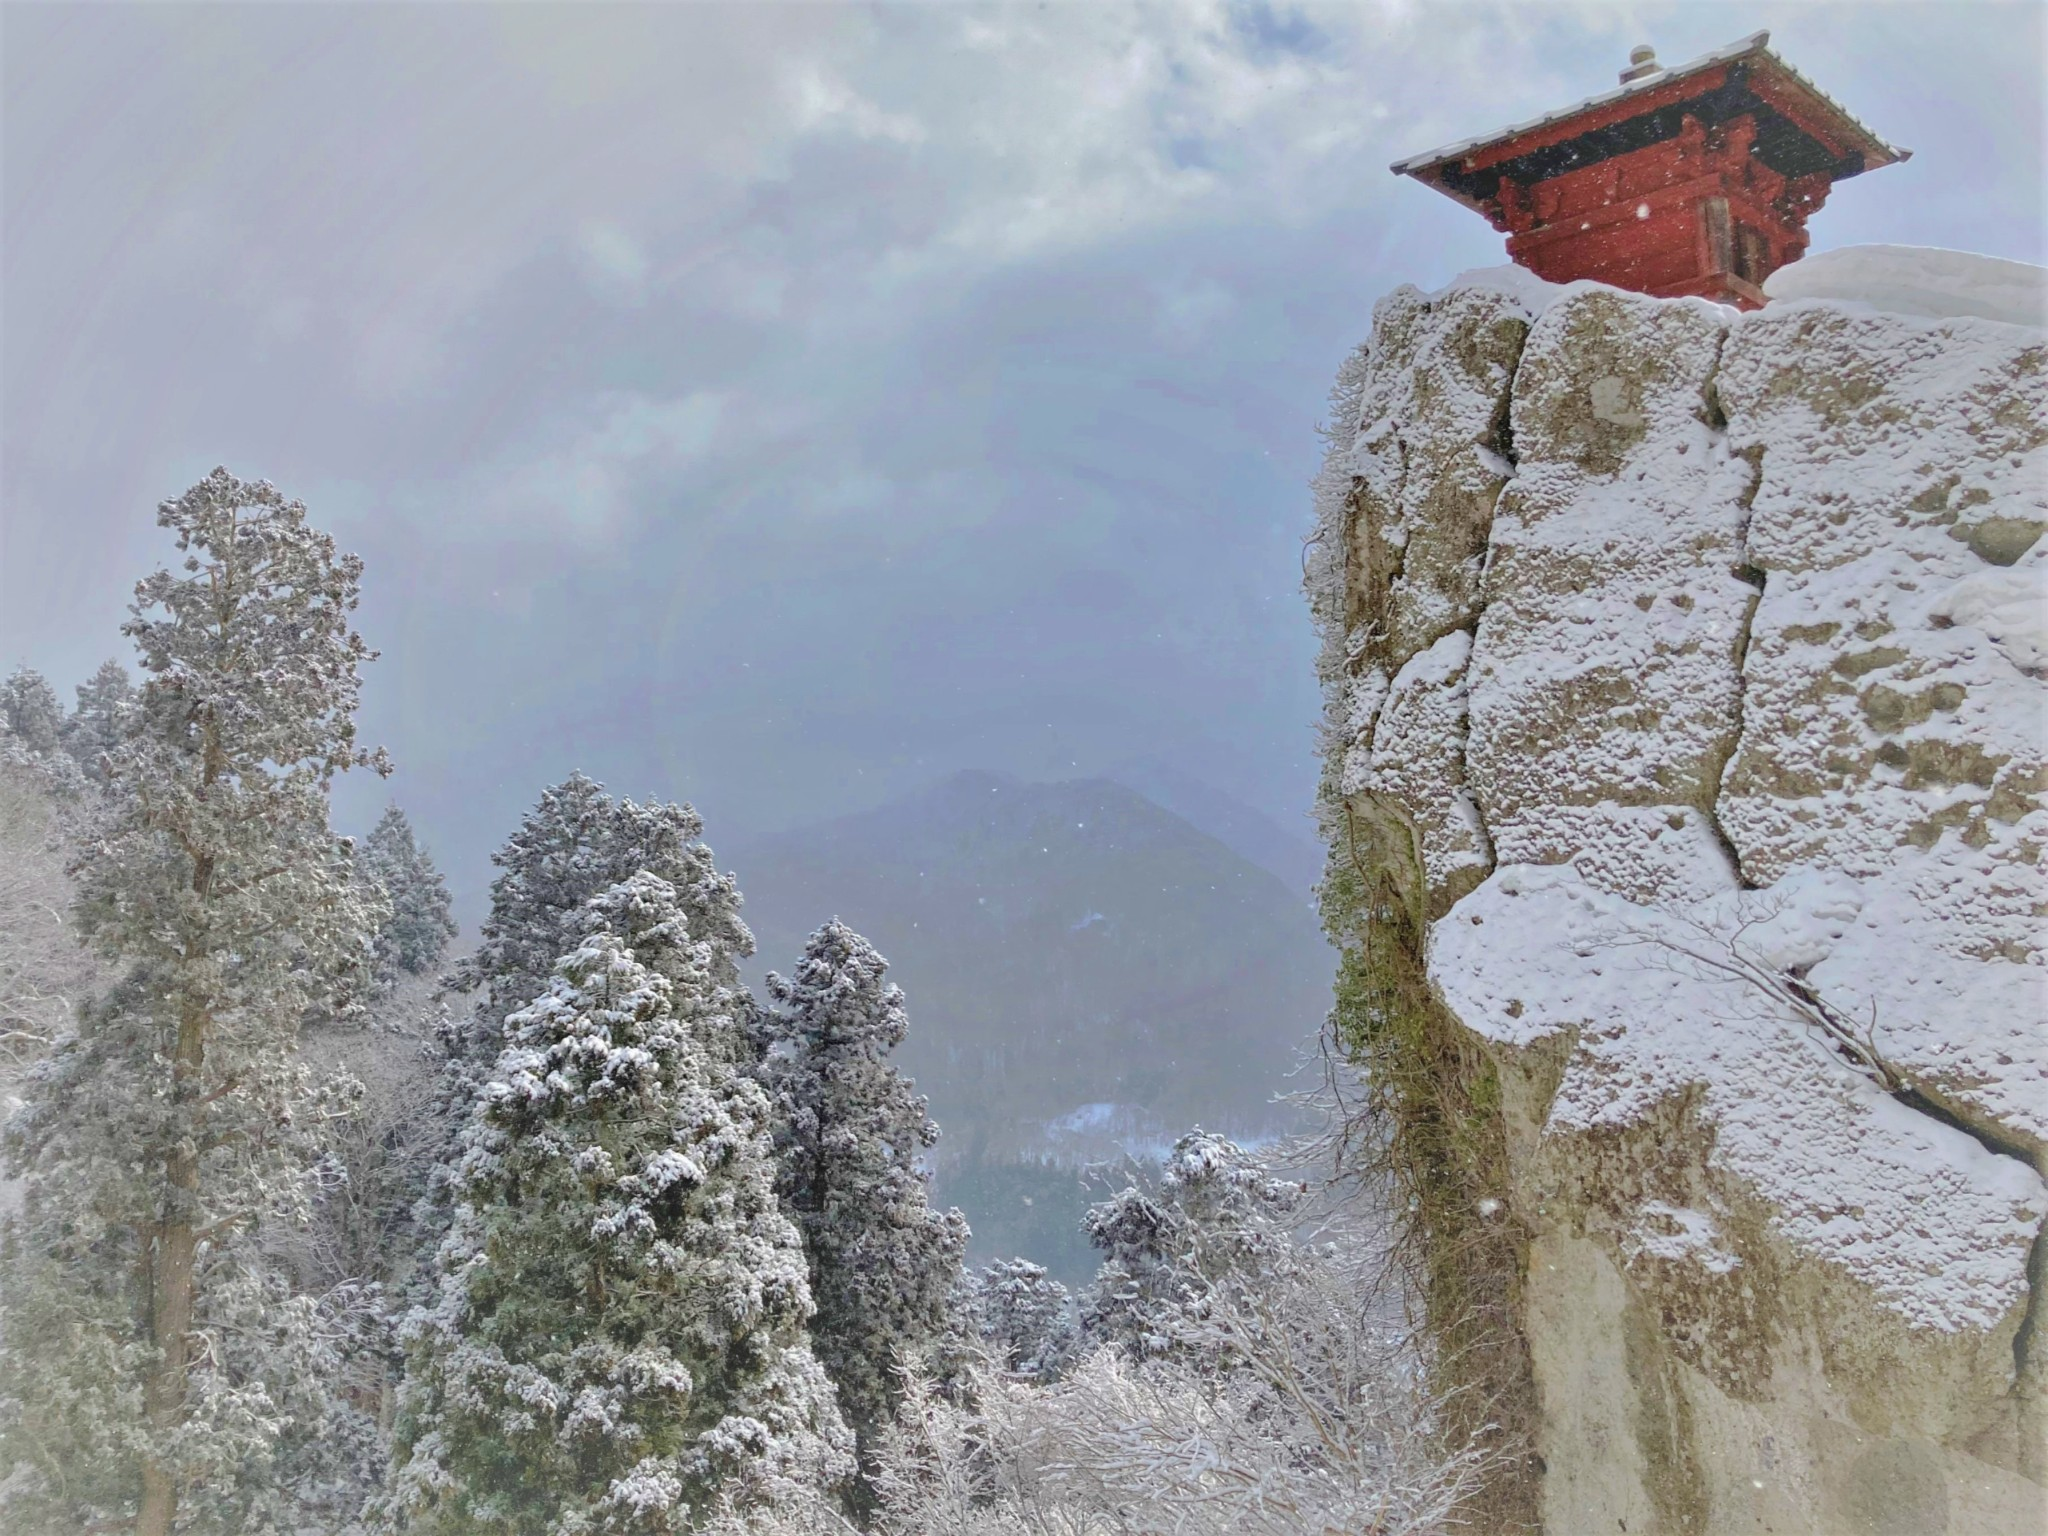 A winter view of a red wooden sutra repository perched on the edge of a cracked and icy cliff at Risshaku-ji in Yamadera, Japan.